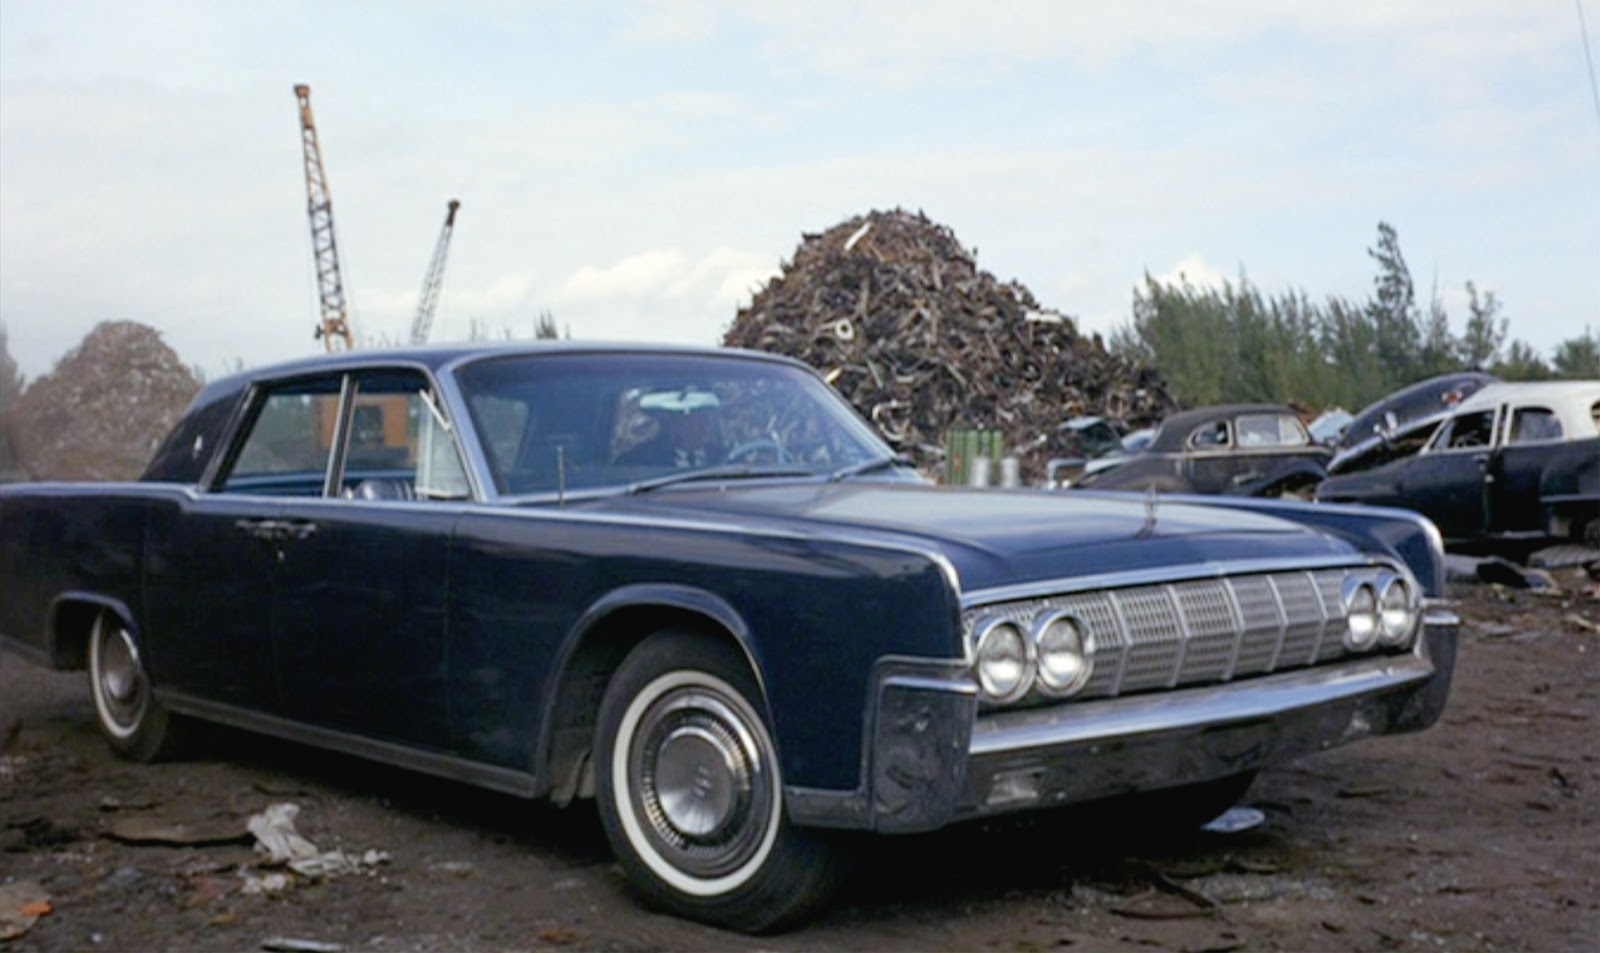 lincoln continental 1964 a venda gstar686 1964 lincoln continental specs photos modification. Black Bedroom Furniture Sets. Home Design Ideas